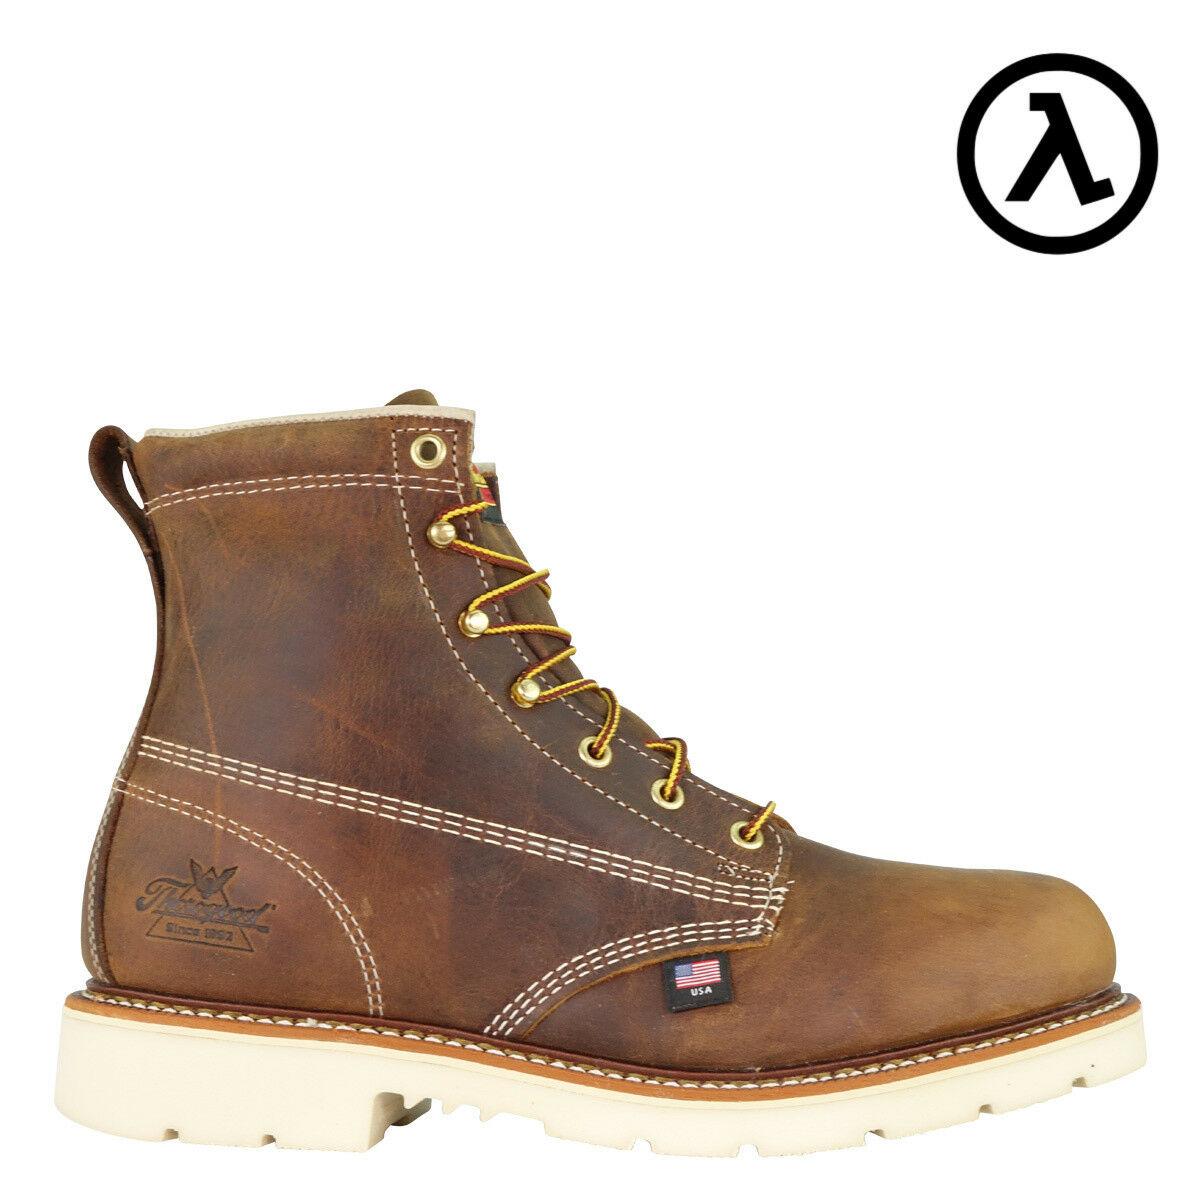 THgoldGOOD AMERICAN HERITAGE CLASSIC STEEL TOE EH WORK BOOTS 804-4374 - ALL SIZES